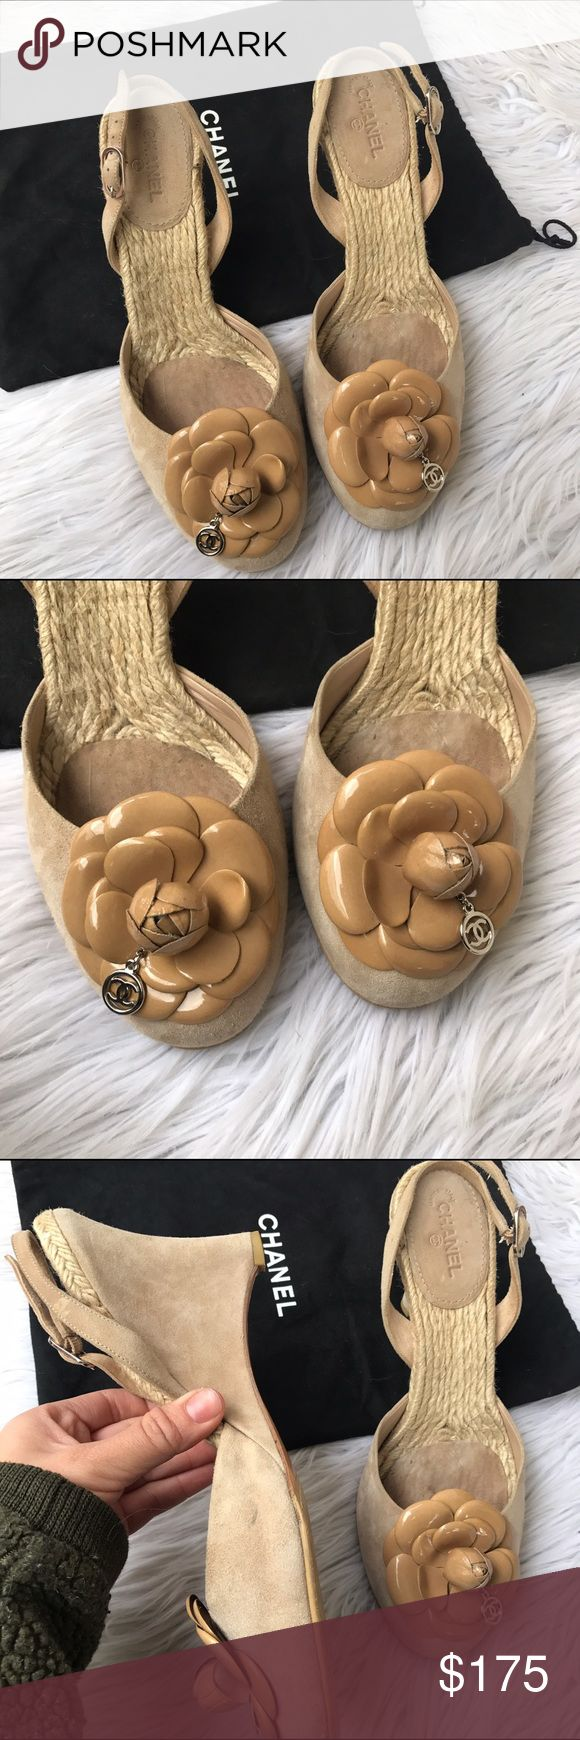 CHANEL SZ 10 BEIGE FLORAL ESPADRILLES WEDGES SHOES Perfection for spring ✨🌹 CHANEL Shoes